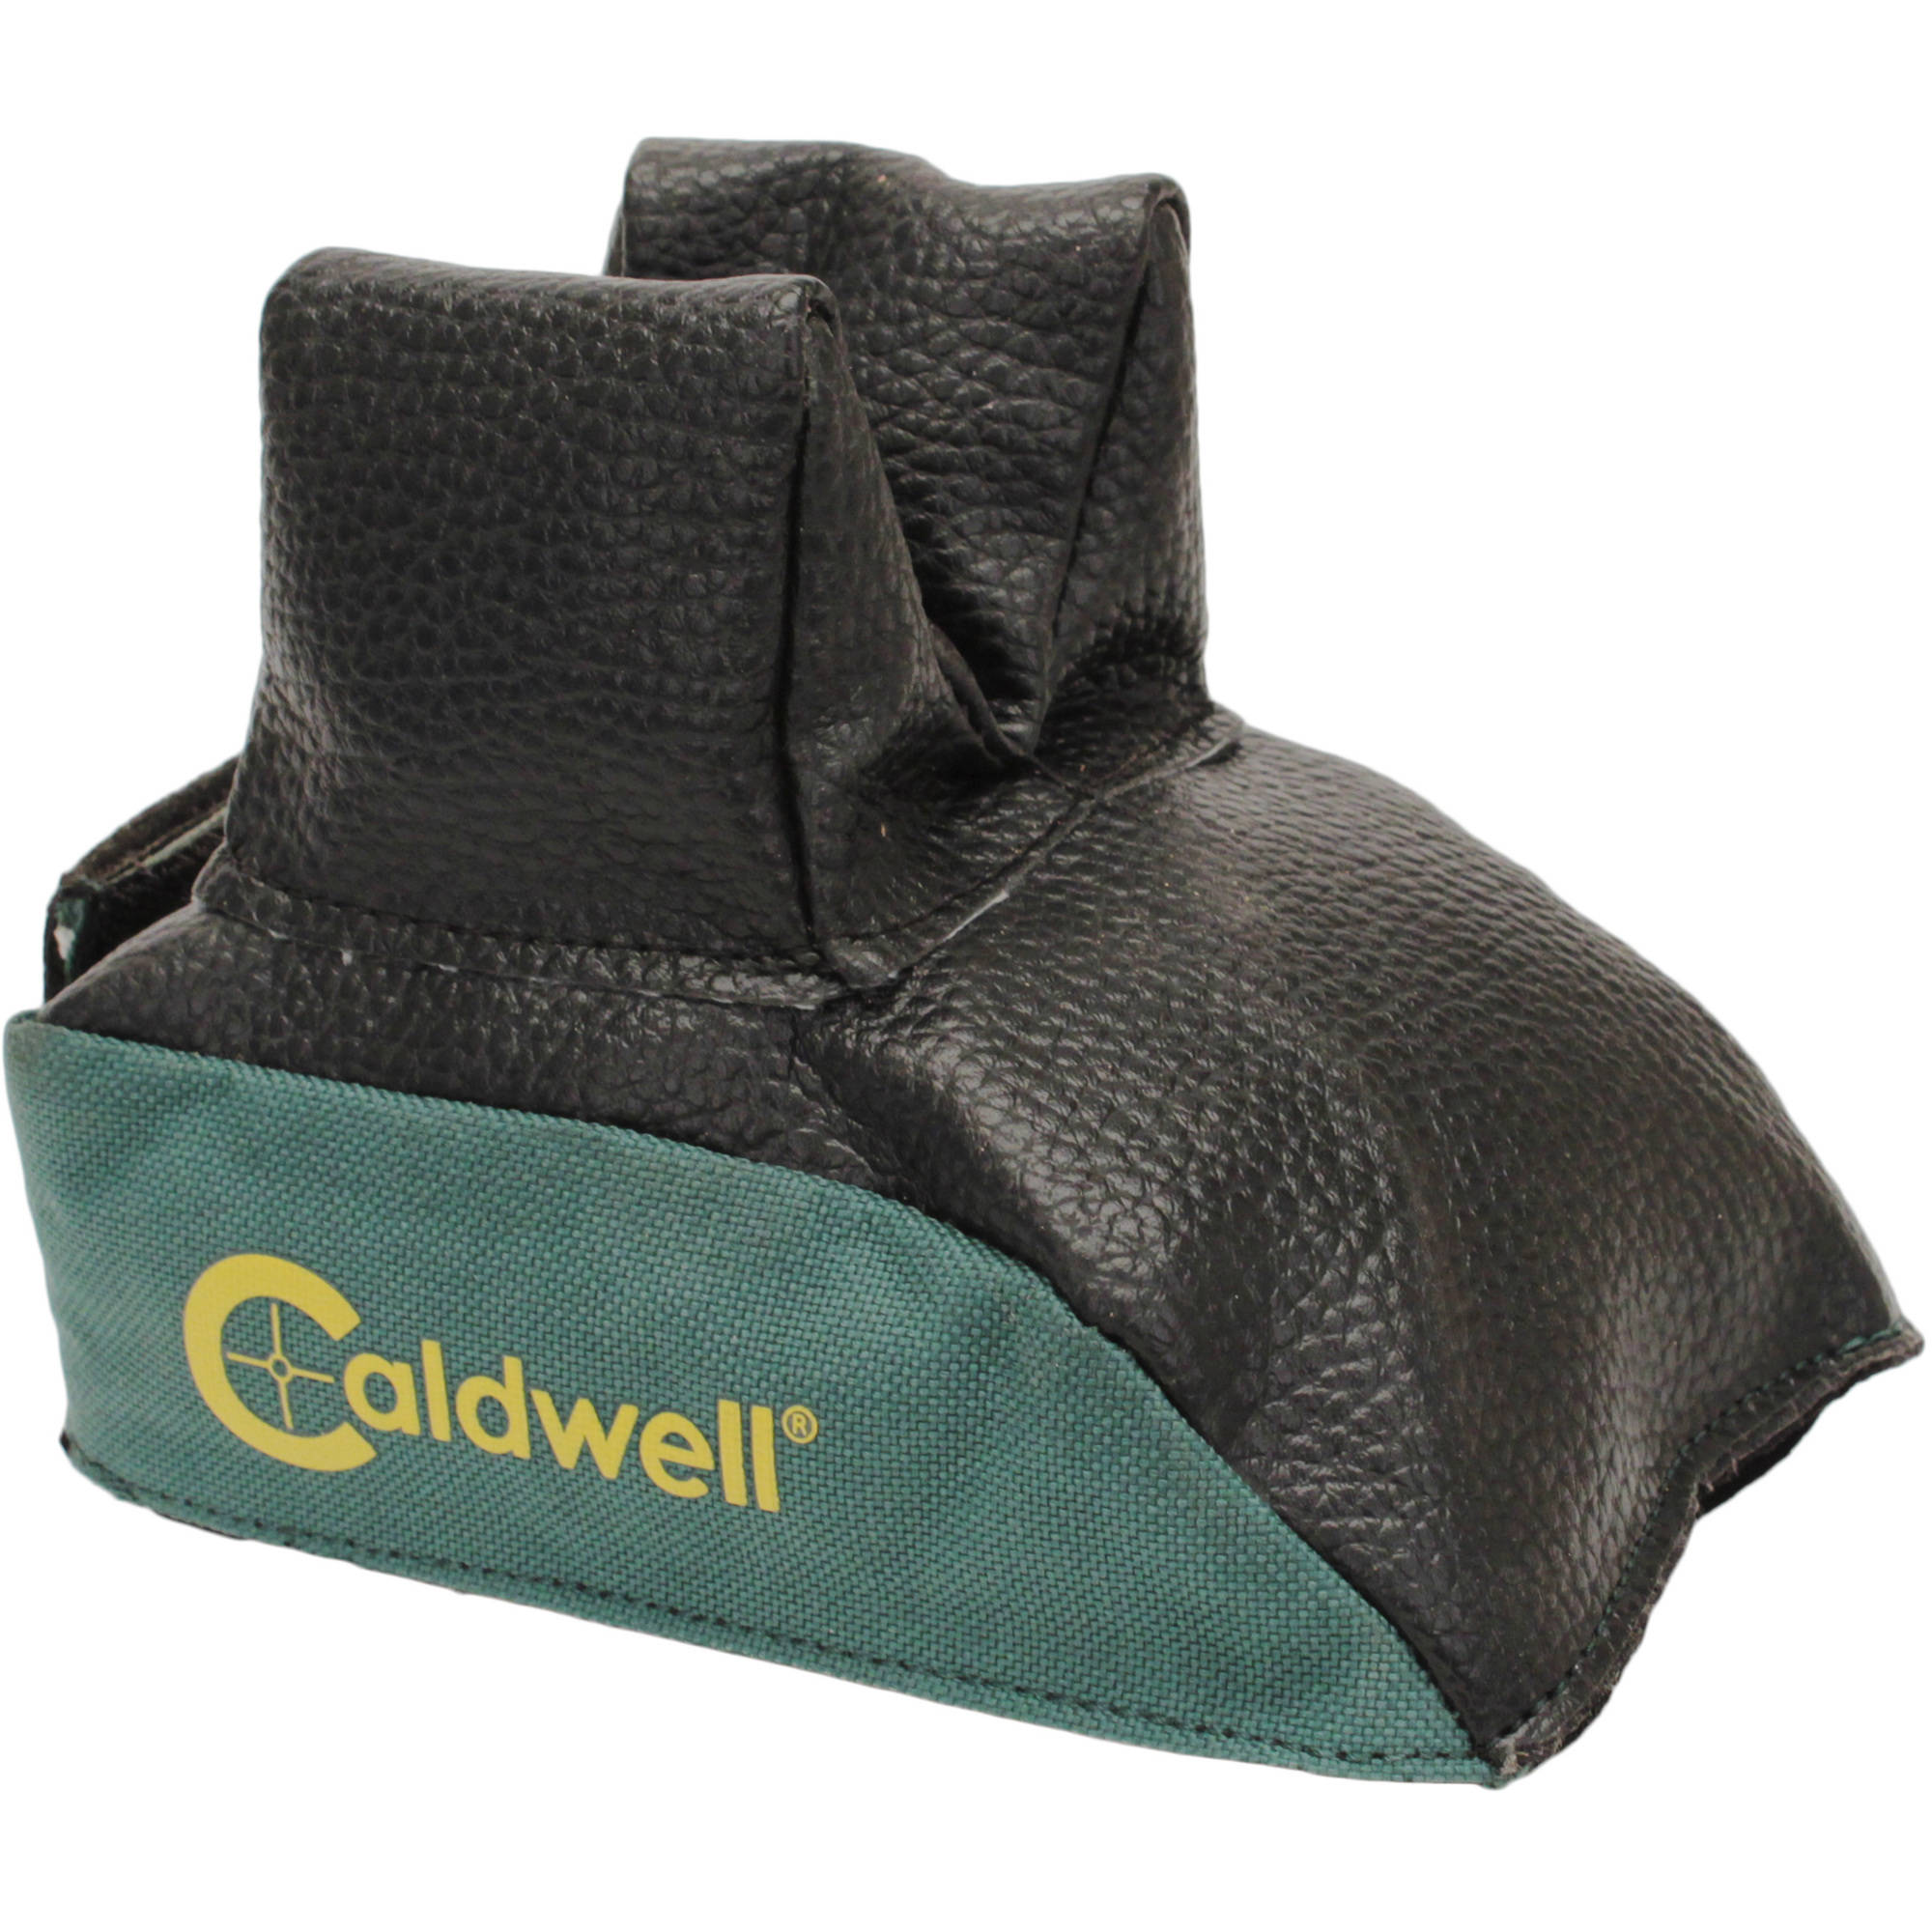 Caldwell Deluxe Shooting Bags Rear Filled